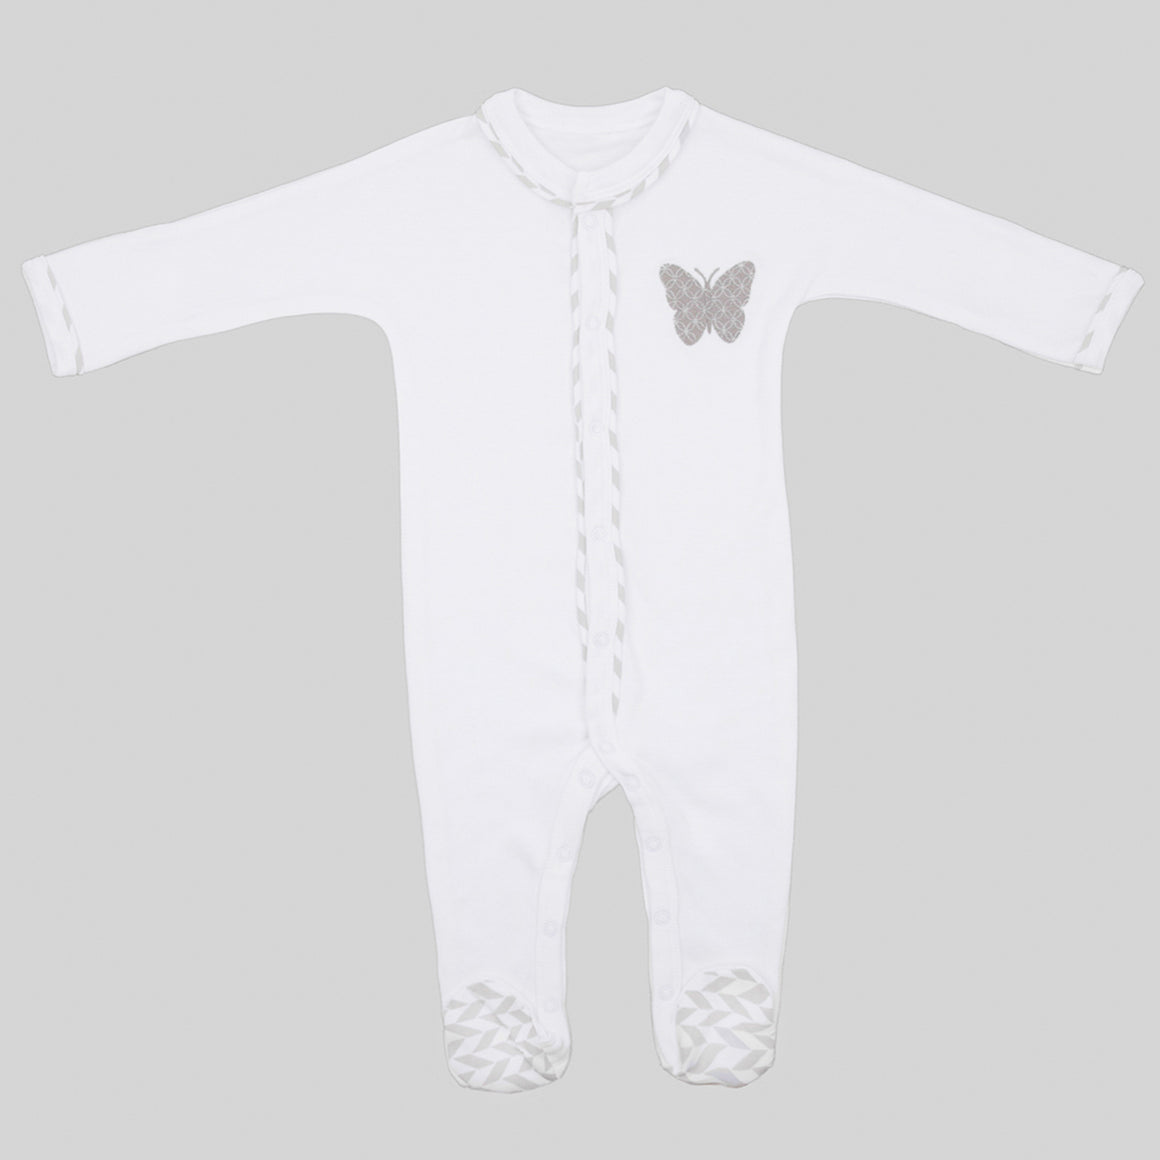 Lily & Mortimer Romper suit white/grey